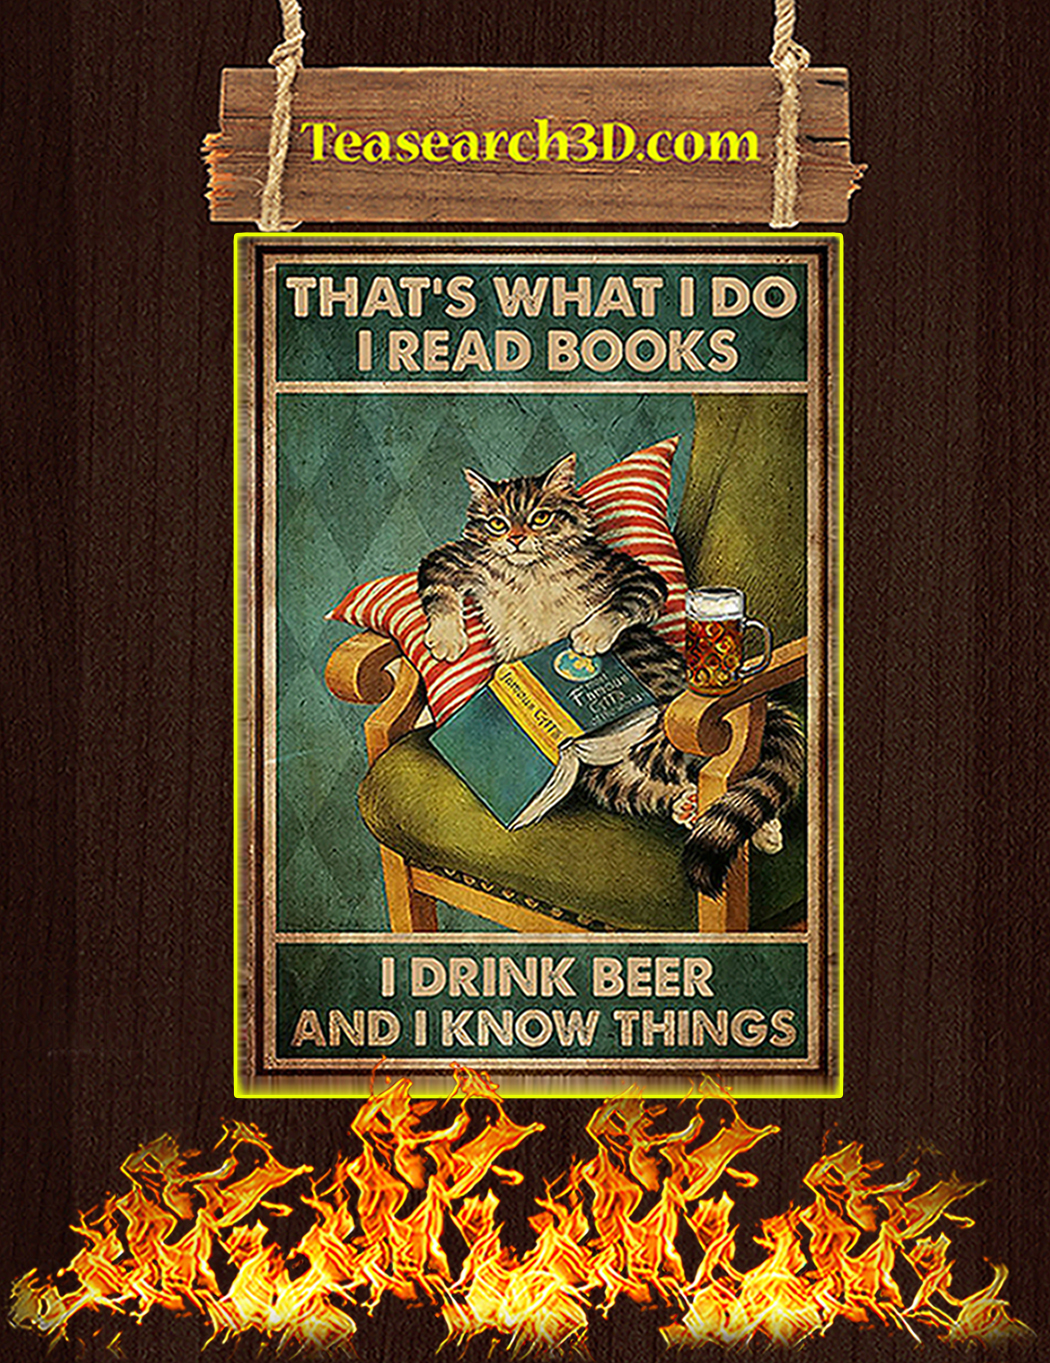 Cat that's what I do I read books I drink beer and I know things poster A1